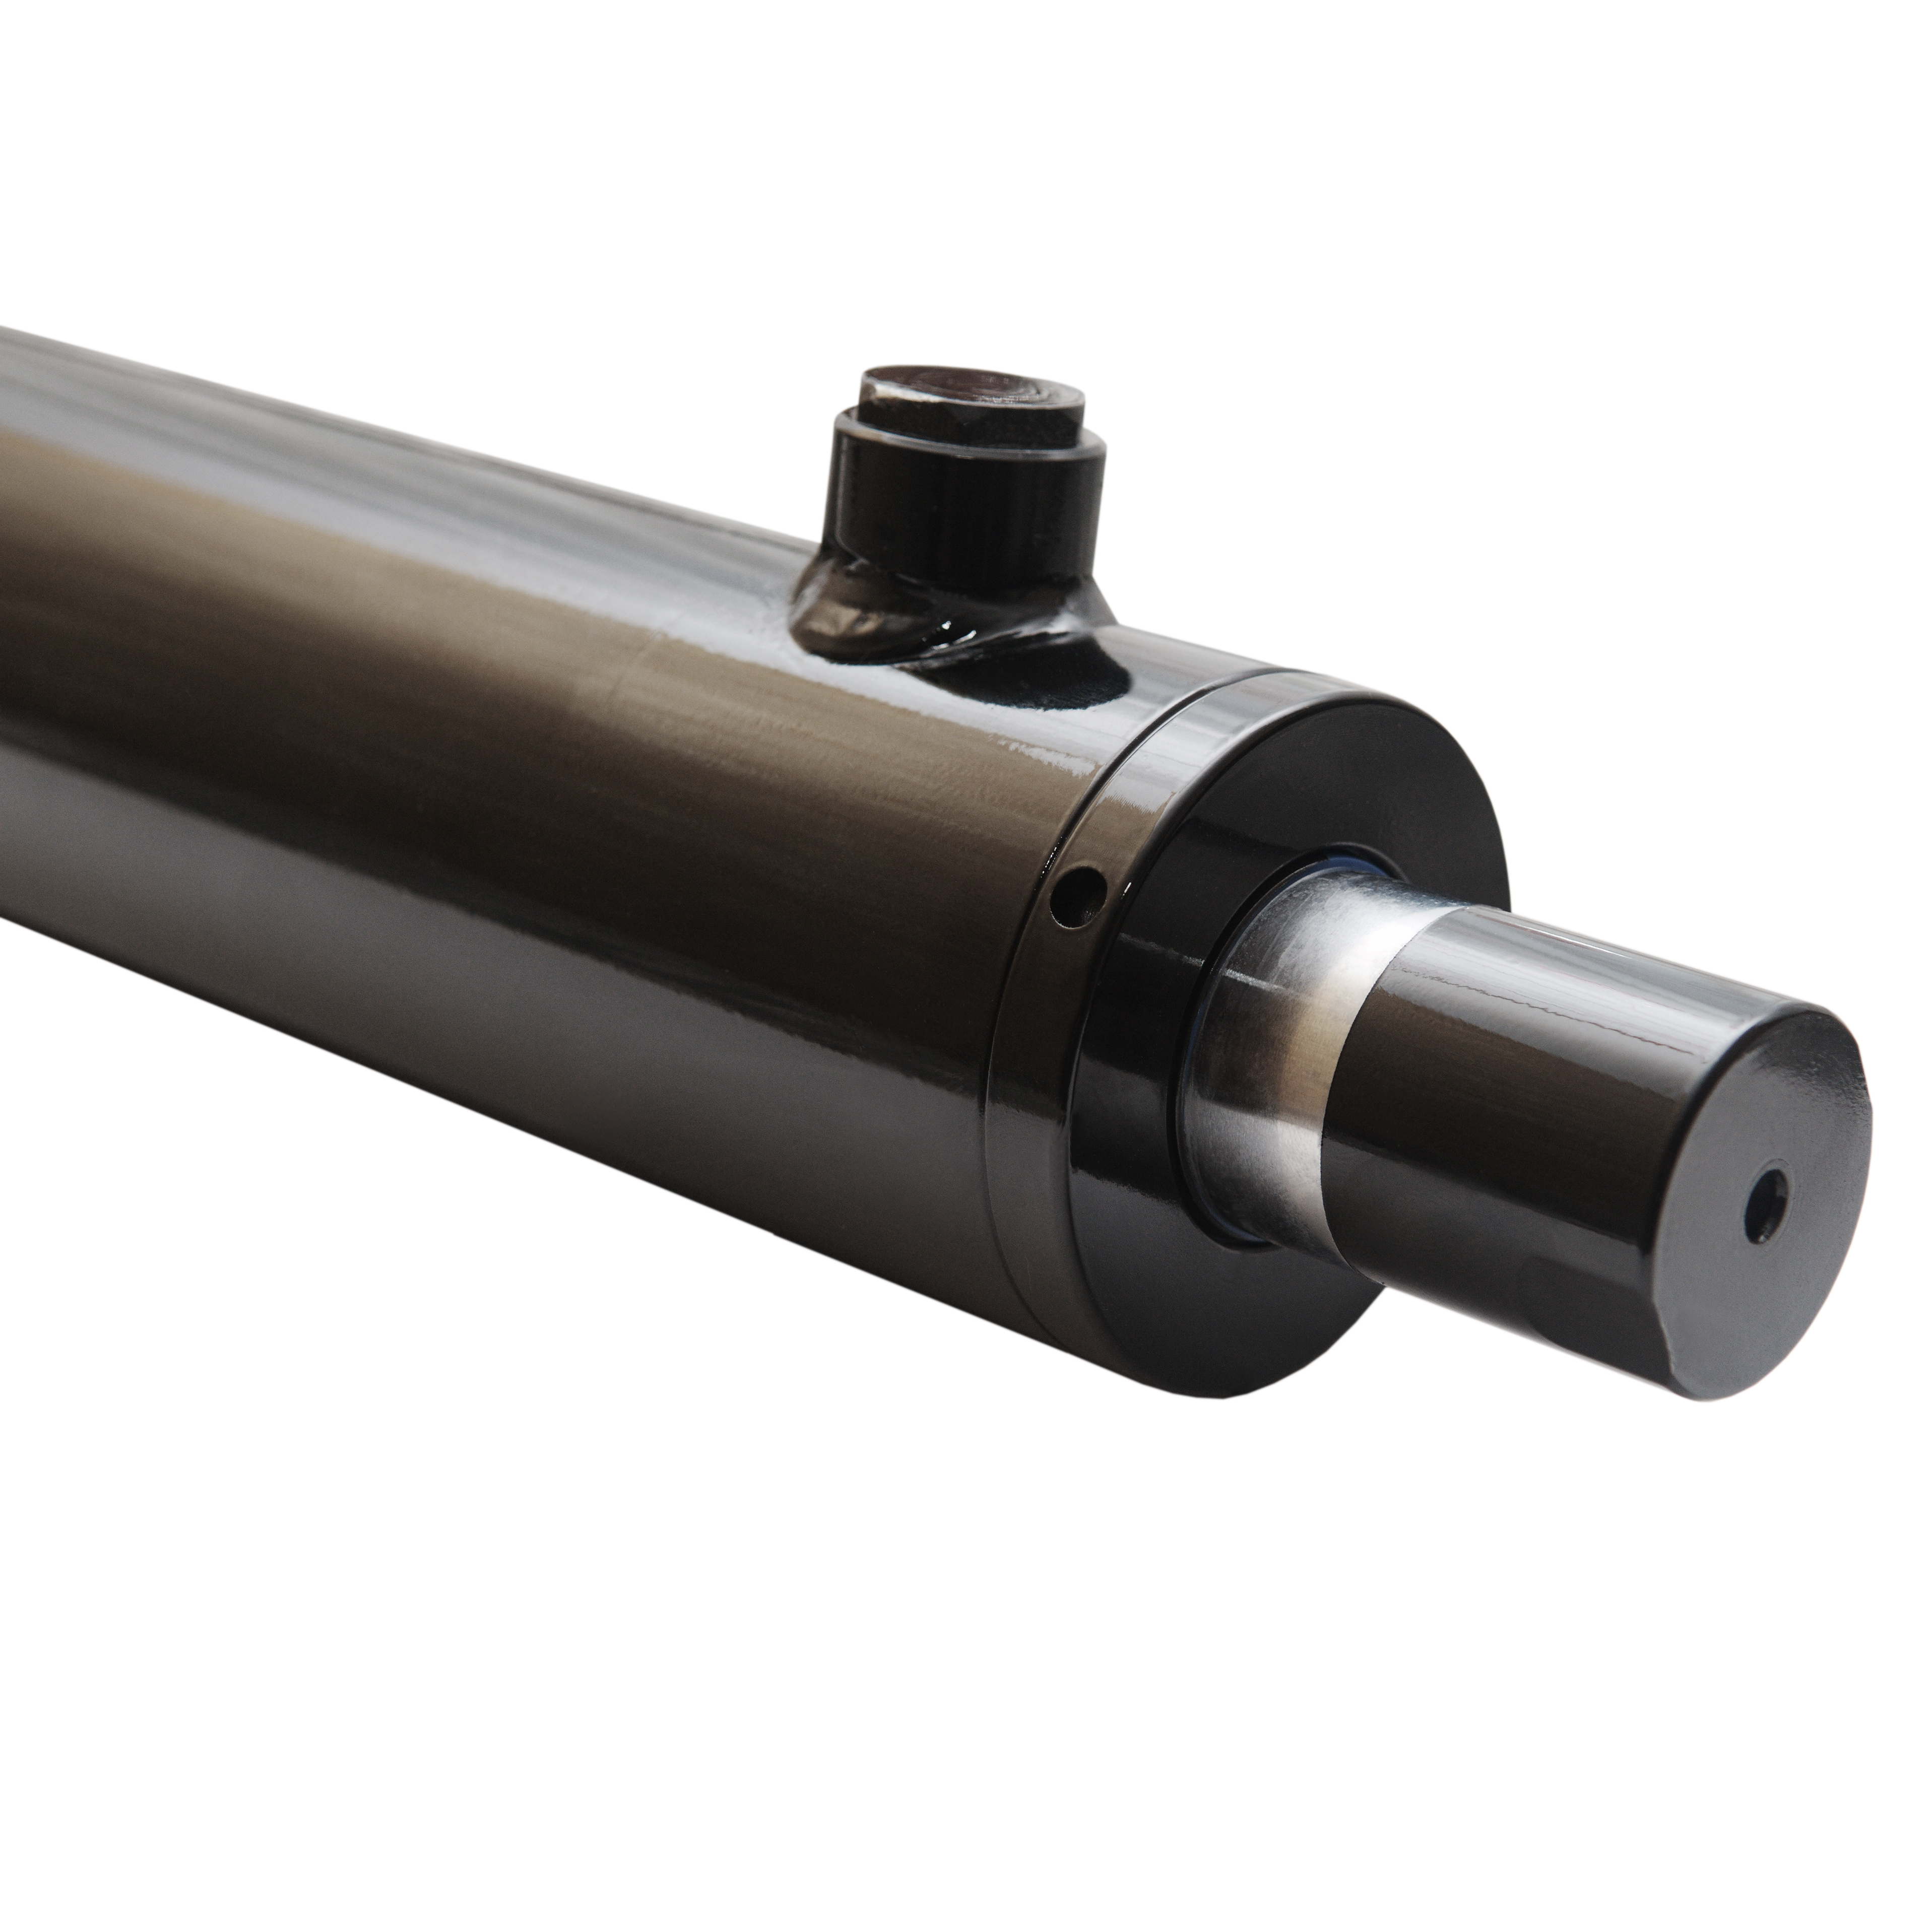 2. bore x 19 stroke hydraulic cylinder, welded universal double acting cylinder | Magister Hydraulics